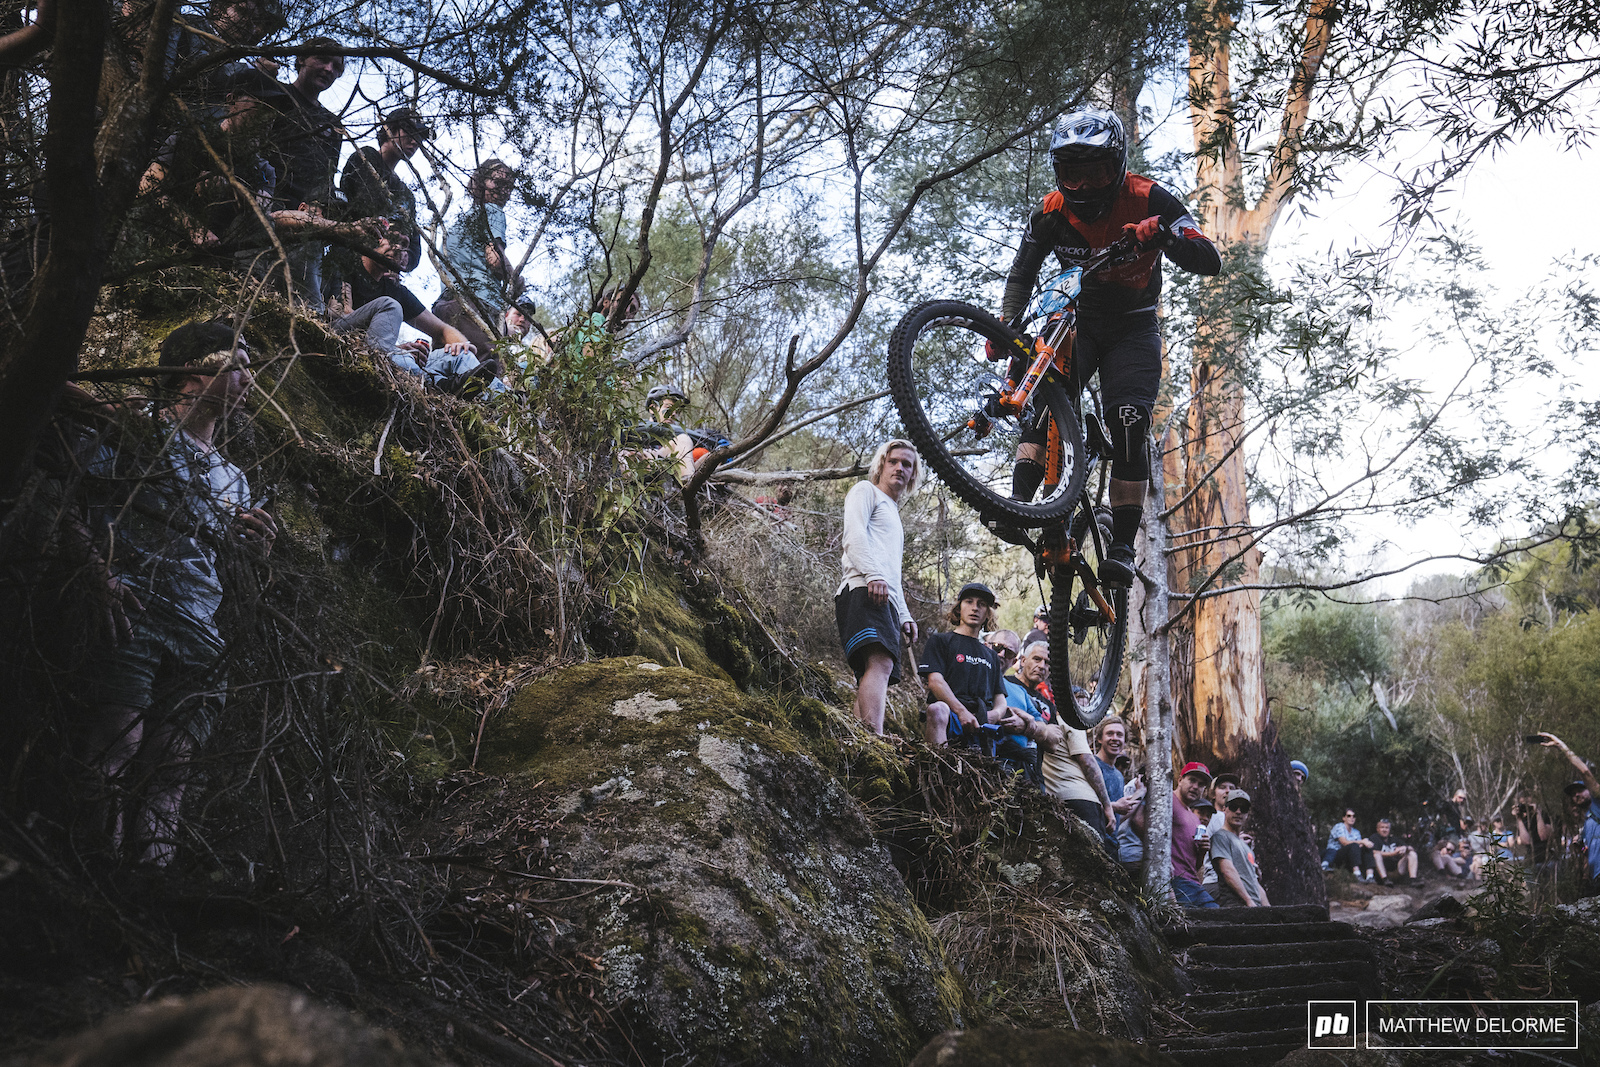 Remi Gauvin hucking his way tot he finish on stage six.